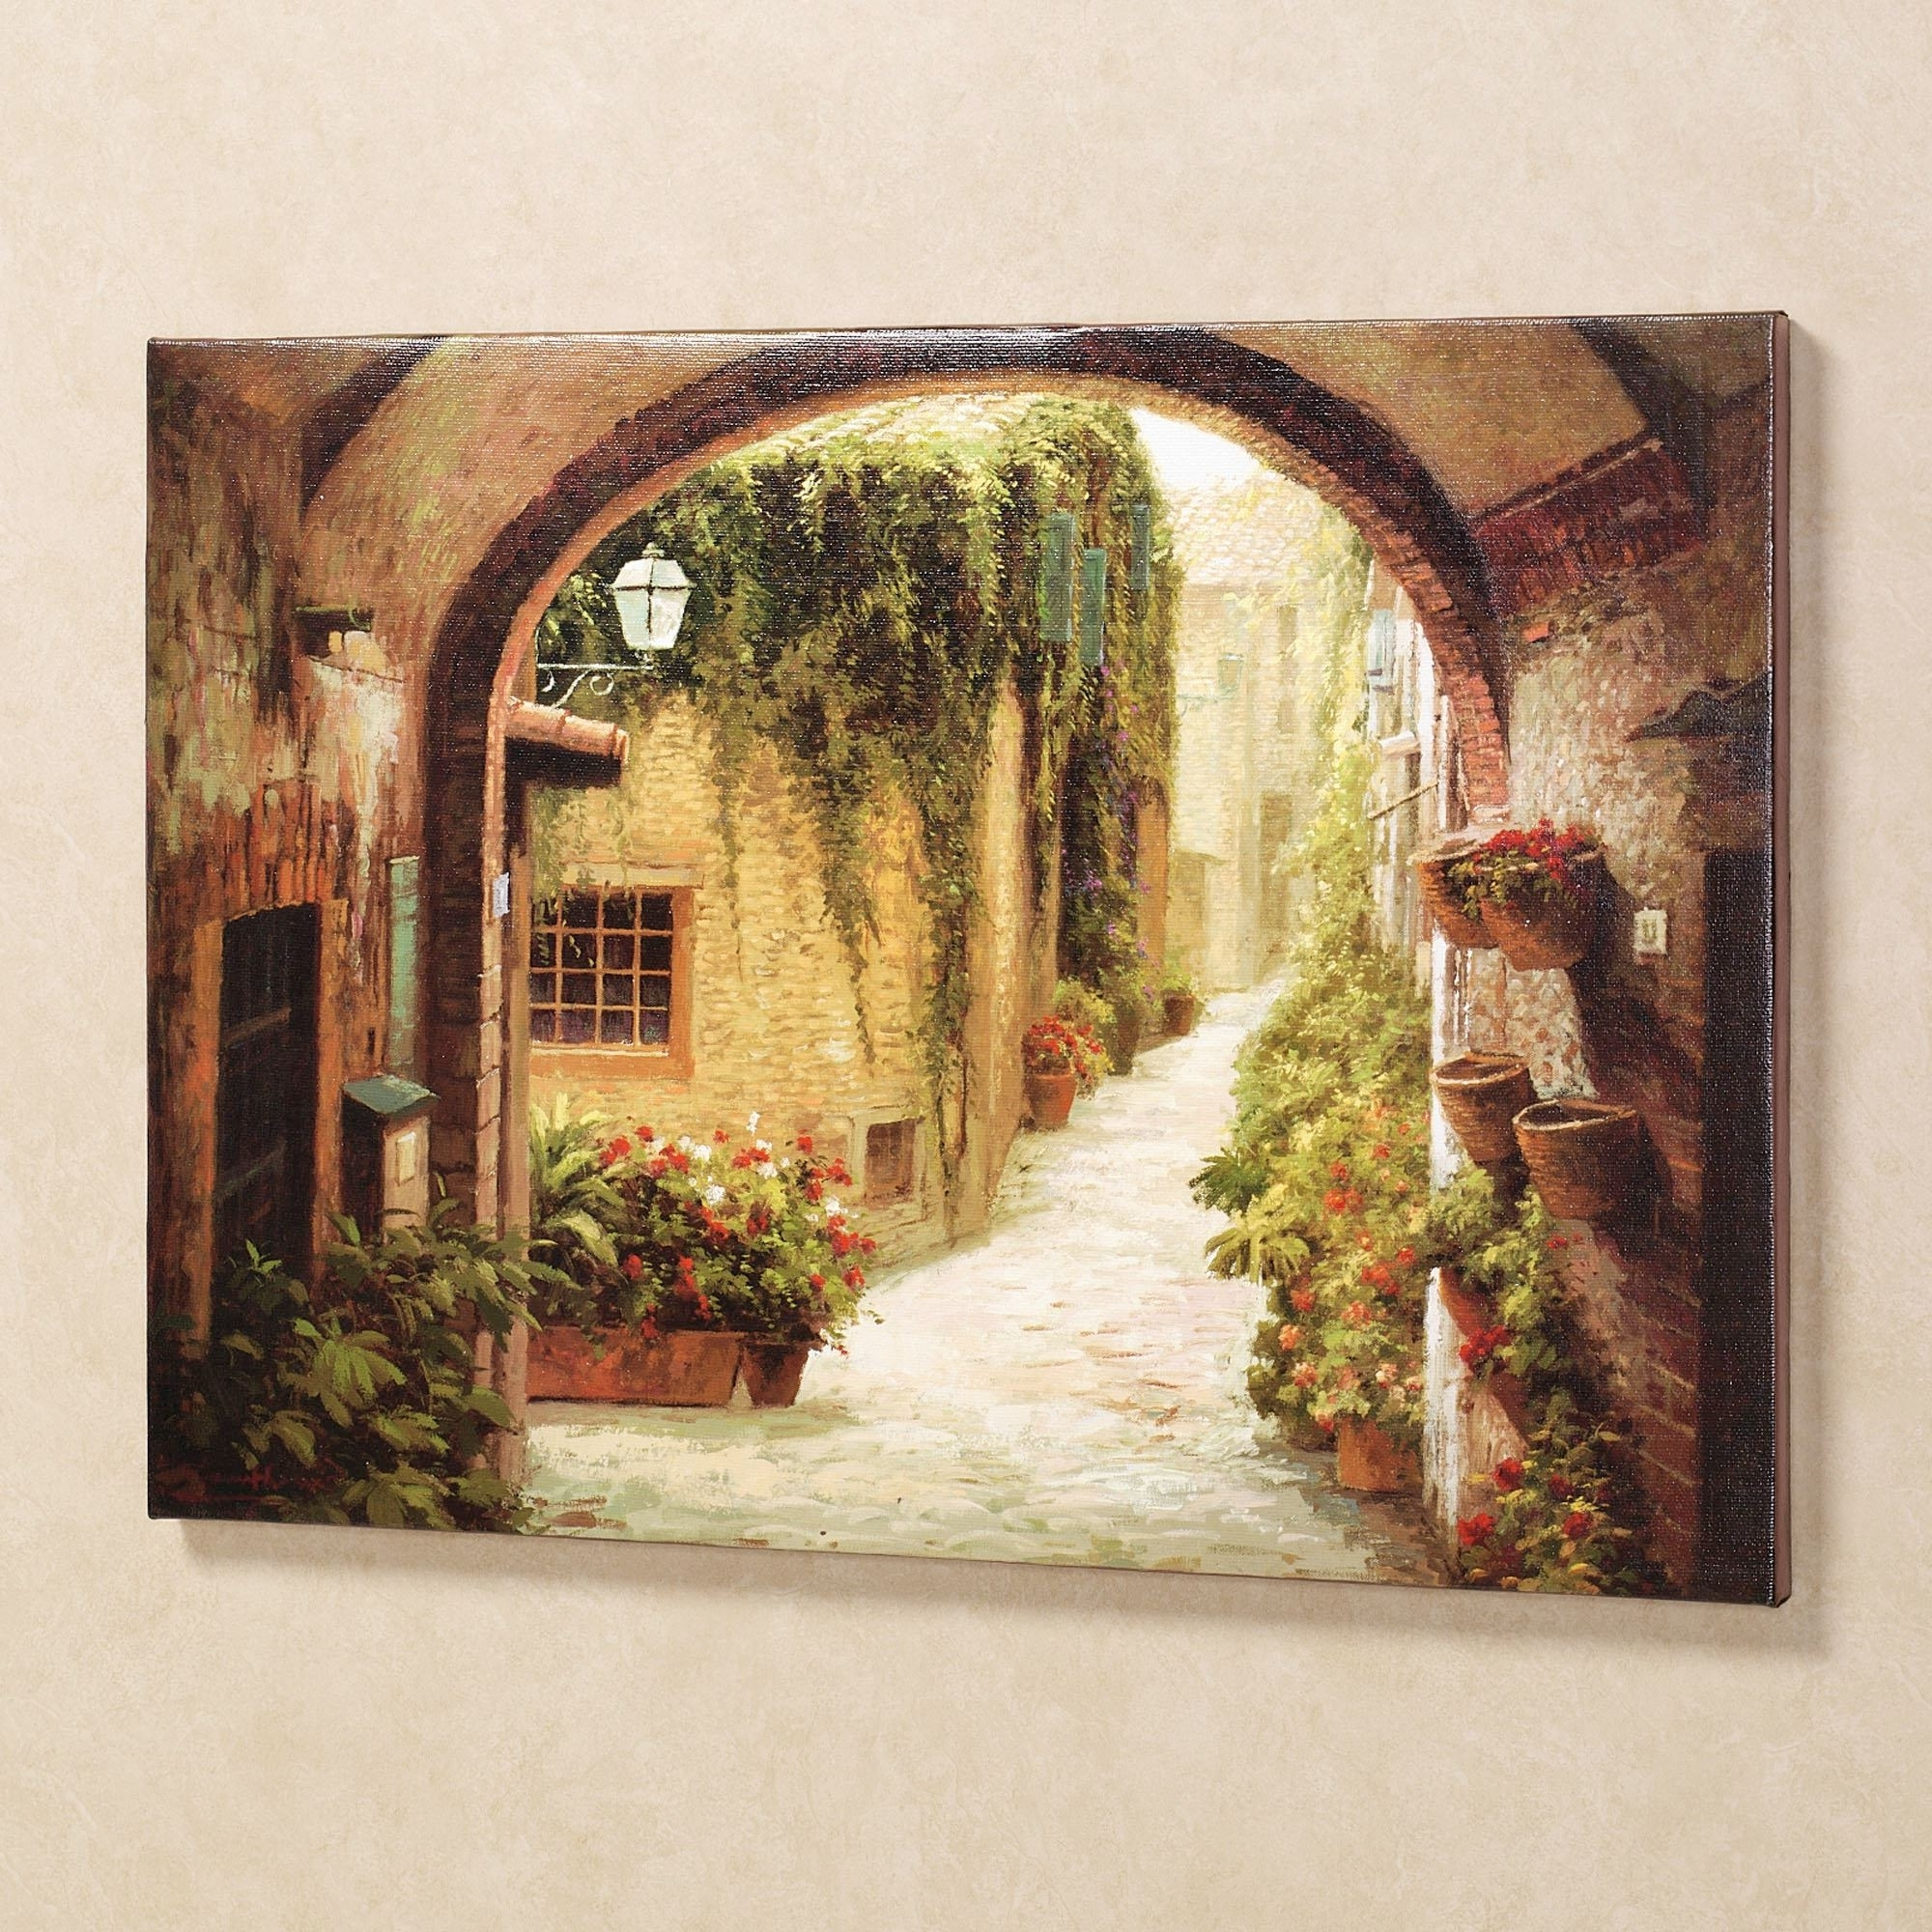 Newest Italian Wall Art Prints Pertaining To Morning Stroll Canvas Wall Art (View 9 of 15)